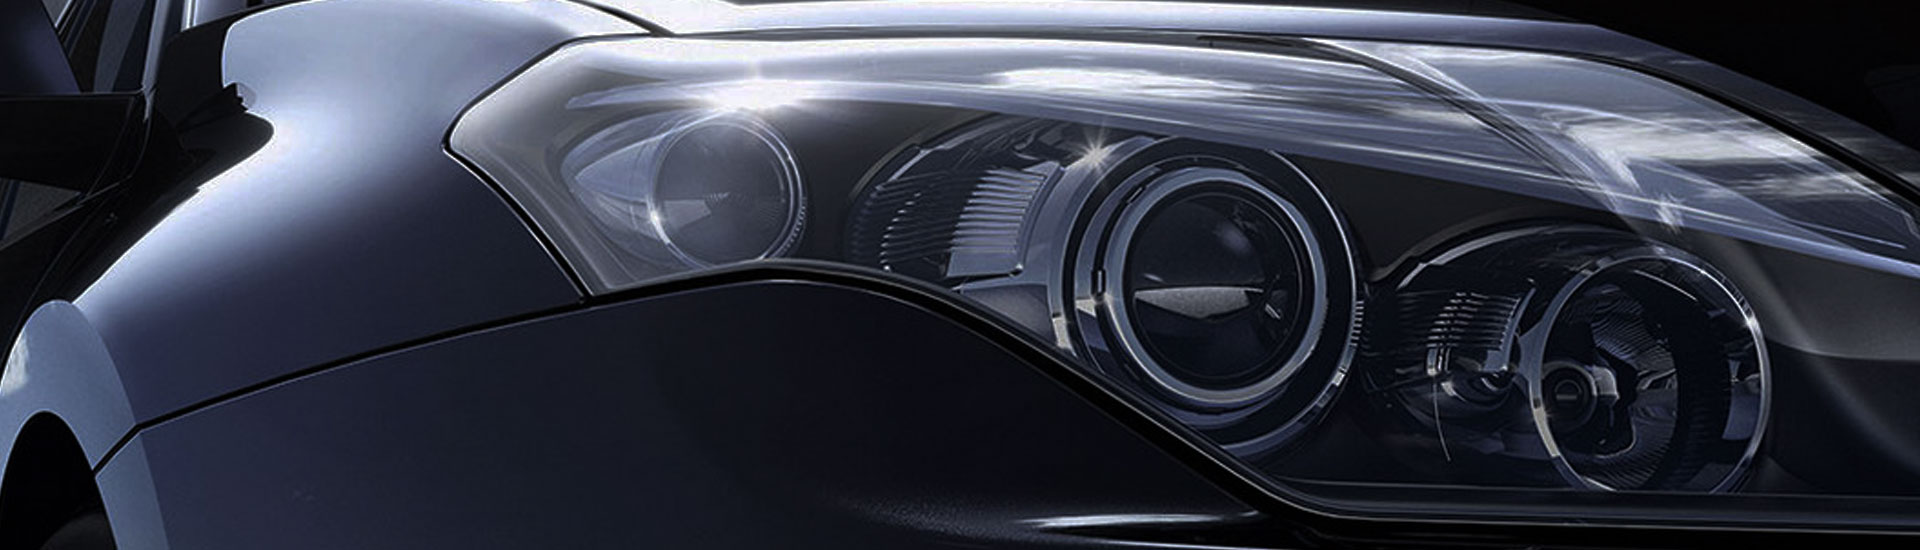 Mercedes-Benz E-Class Headlight Tint Covers